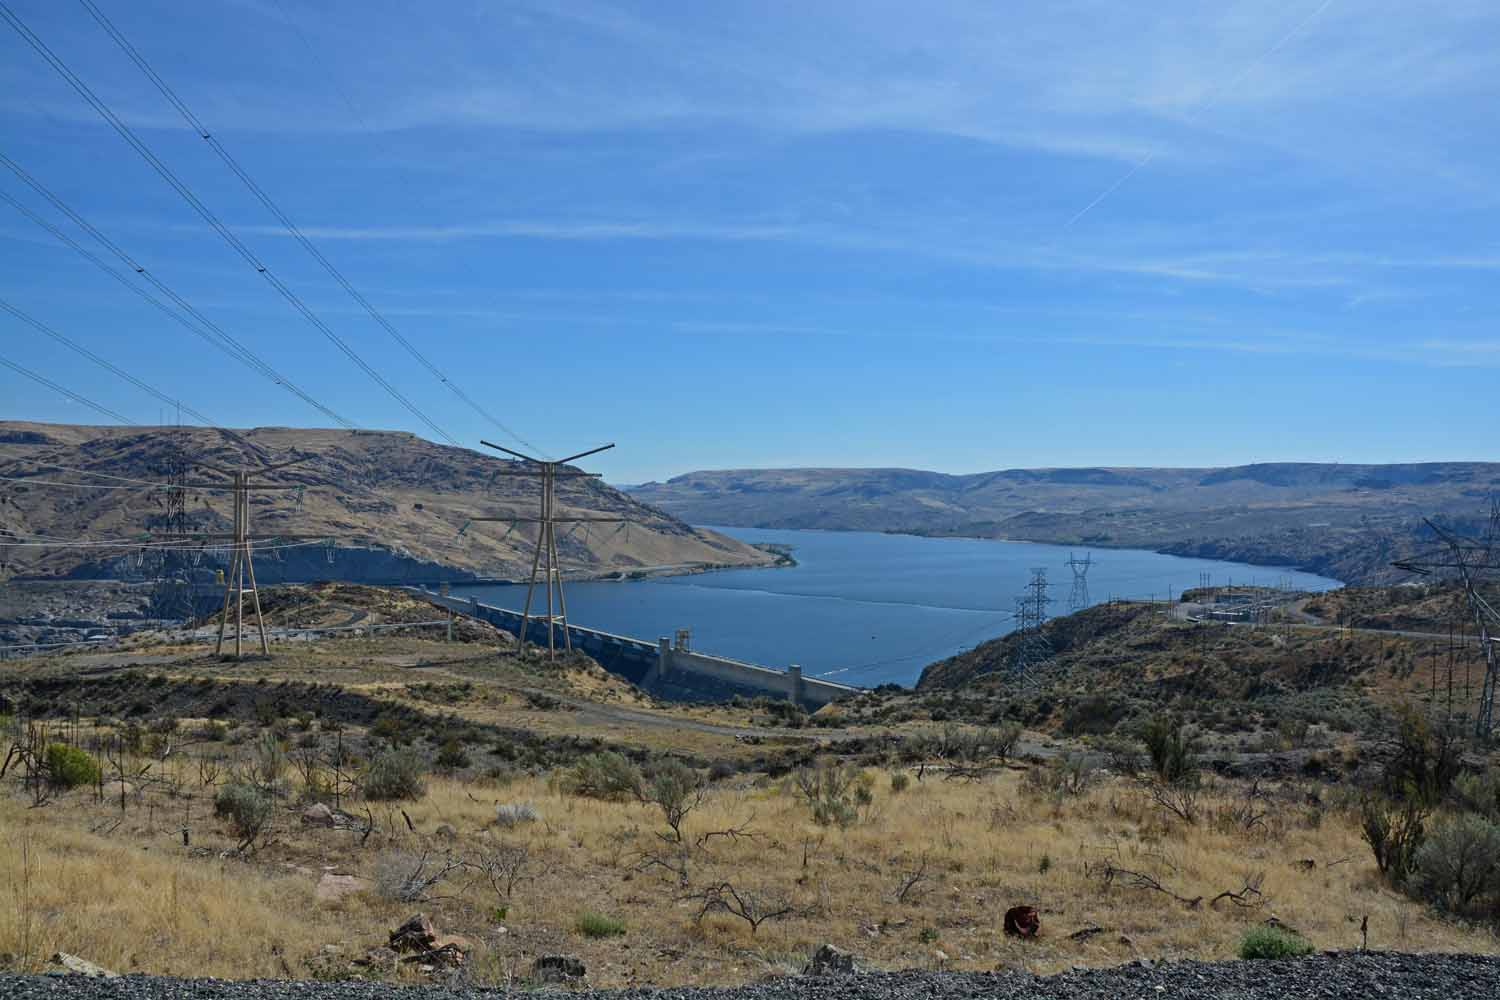 Another angle for the Grand Coulee